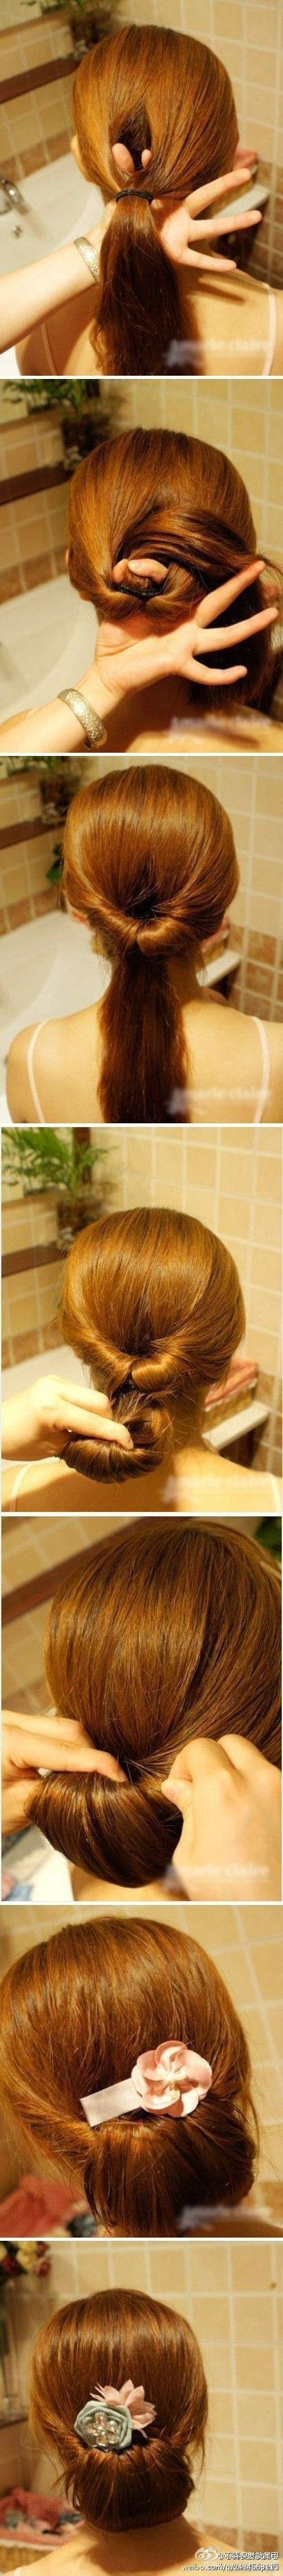 .: Hair Ideas, Wedding Hair, Bridesmaid Hair, Long Hair, Hairstyle, Hair Style, Updo, Hair Buns, Low Buns